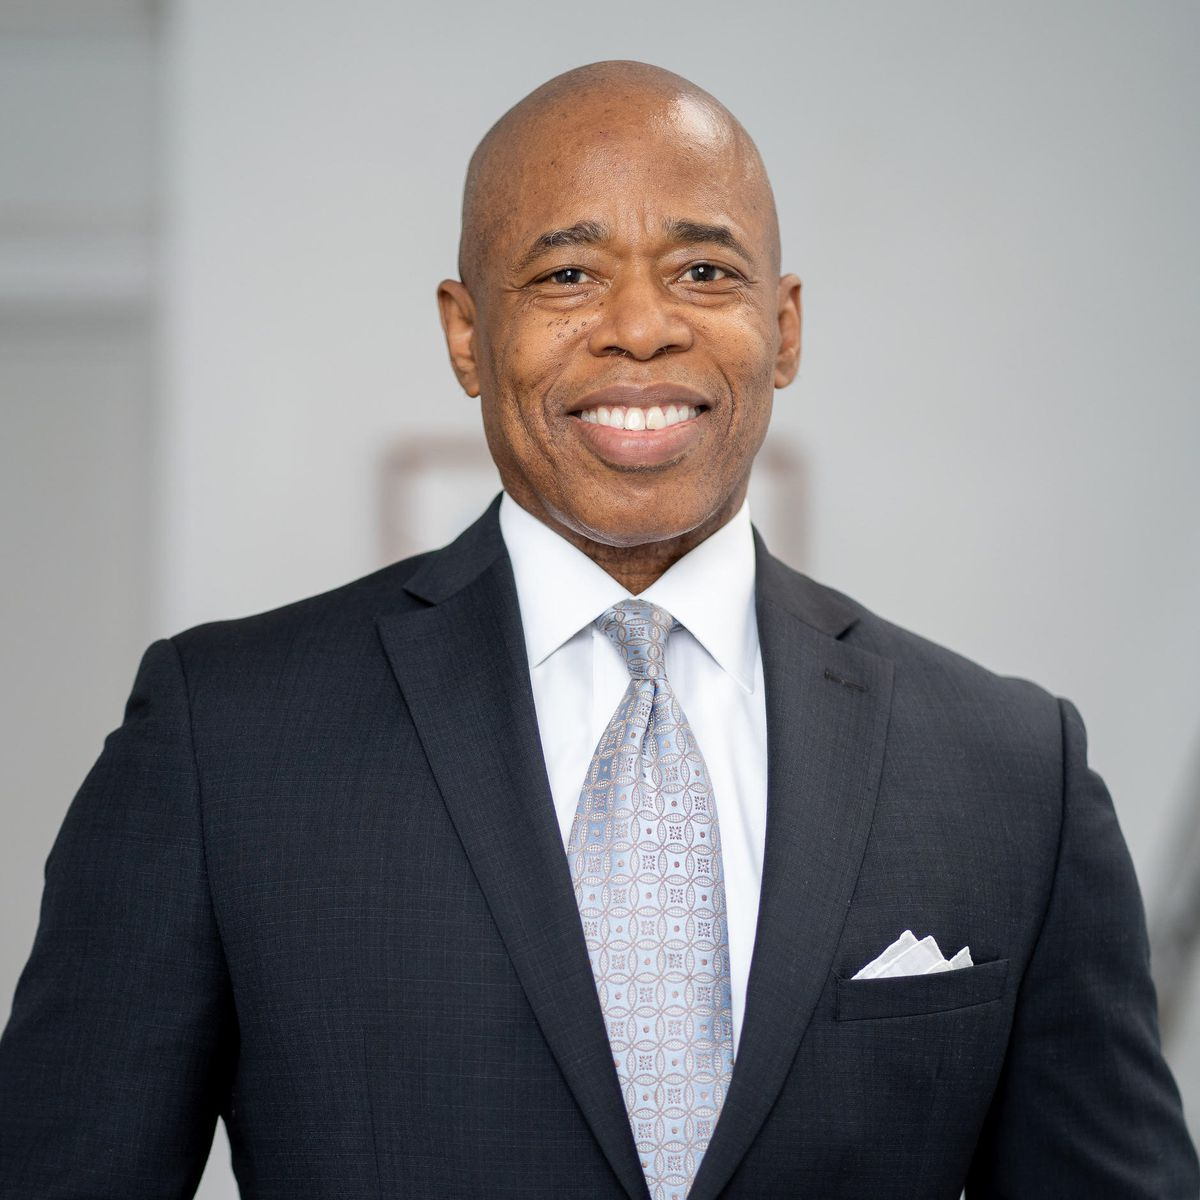 A headshot of NYC mayoral candidate Eric Adams.